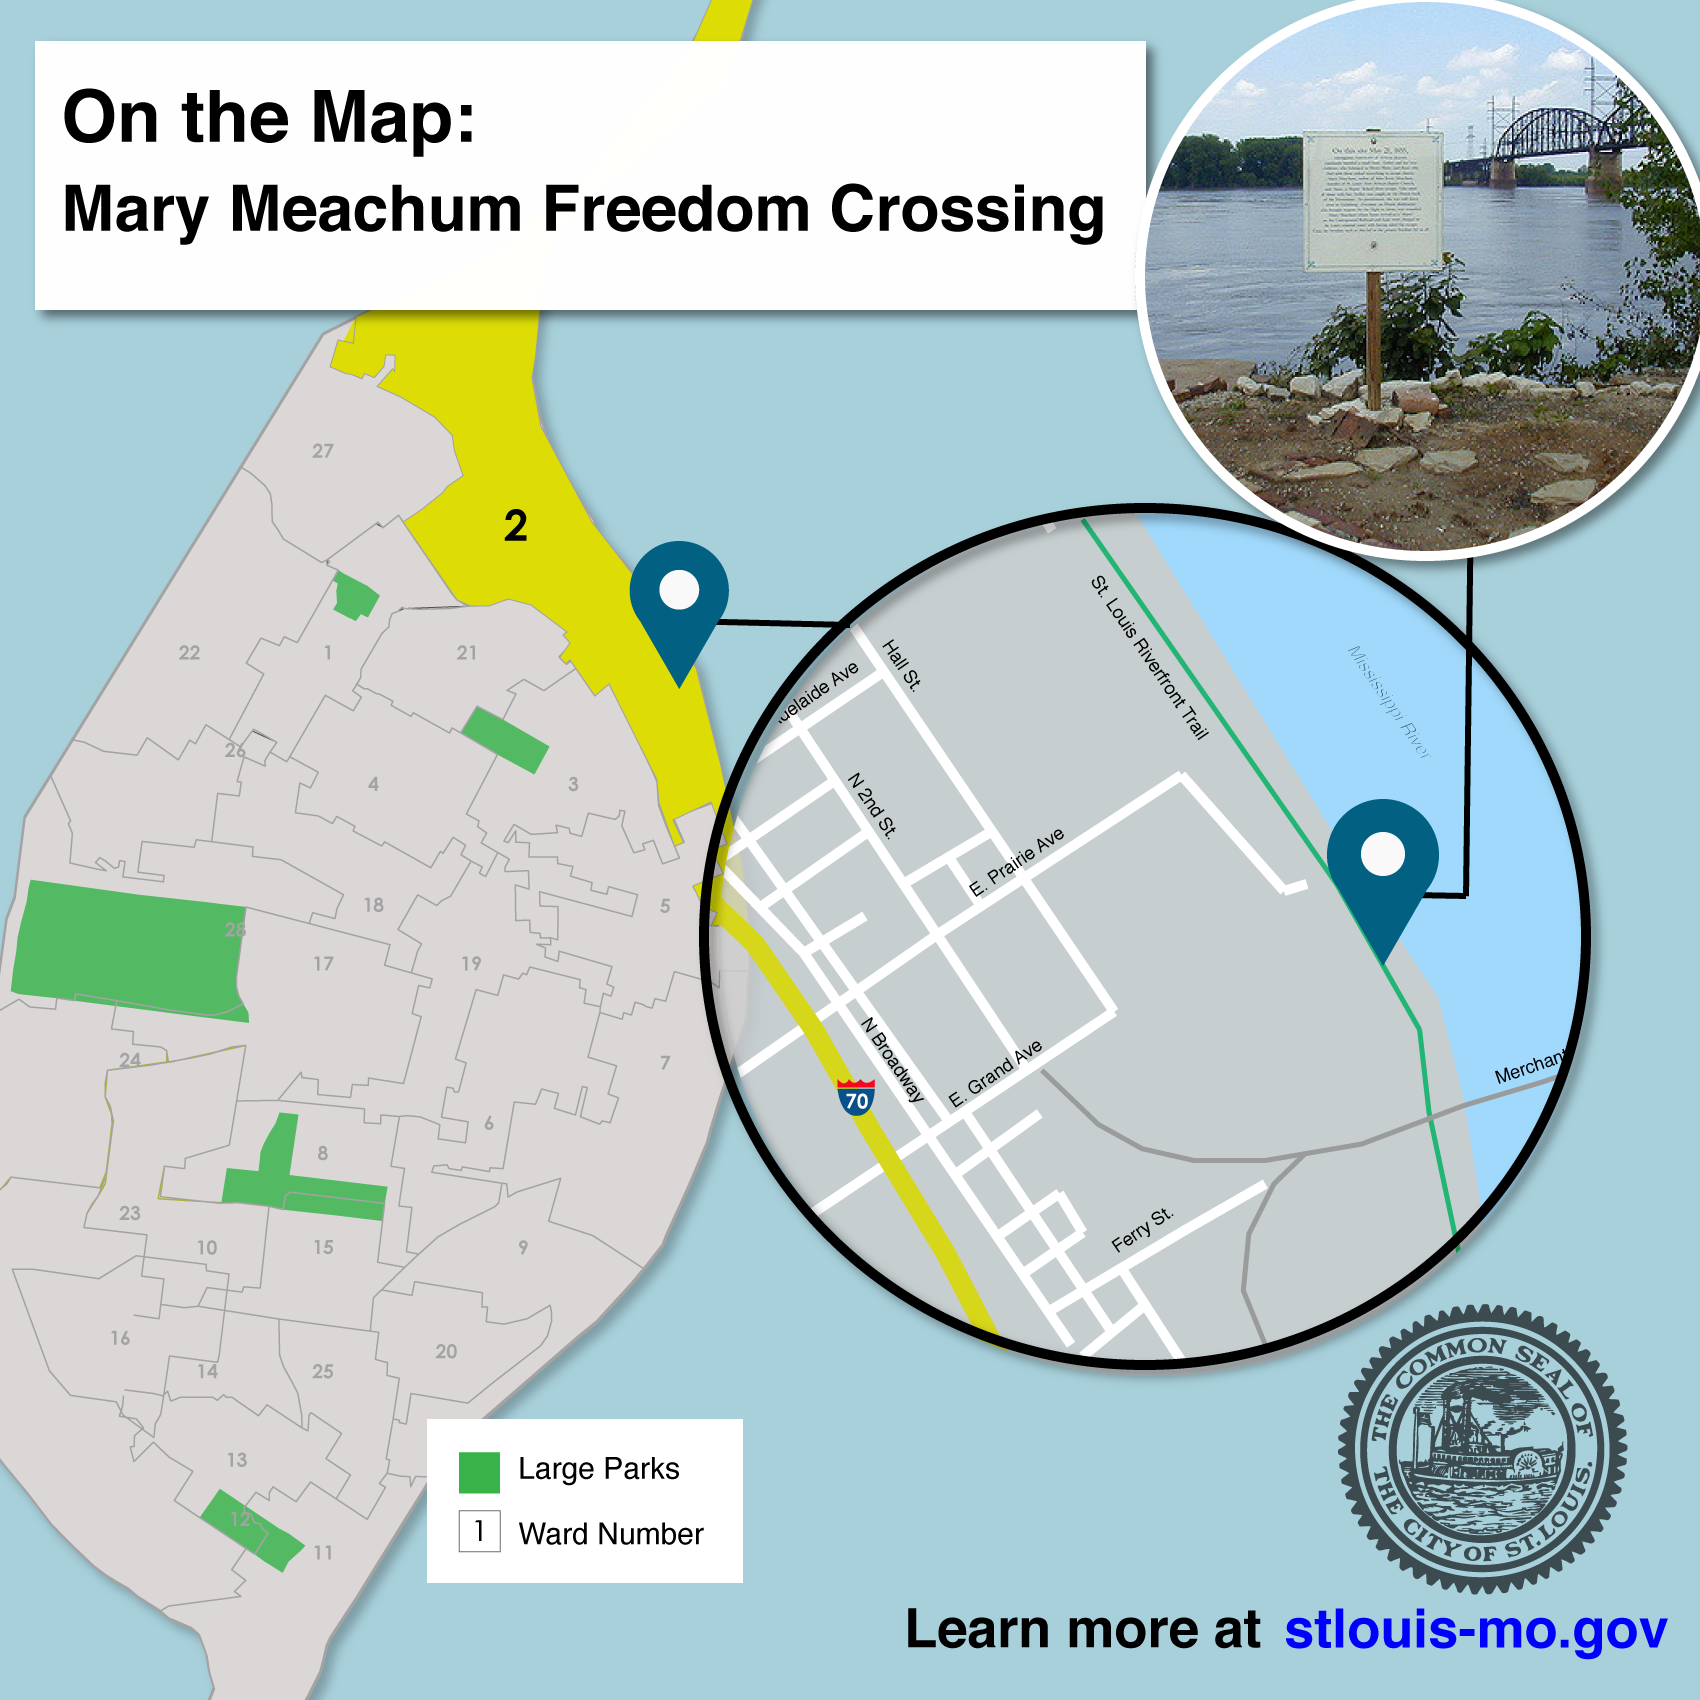 On the Map Mary Meachum Freedom Crossing